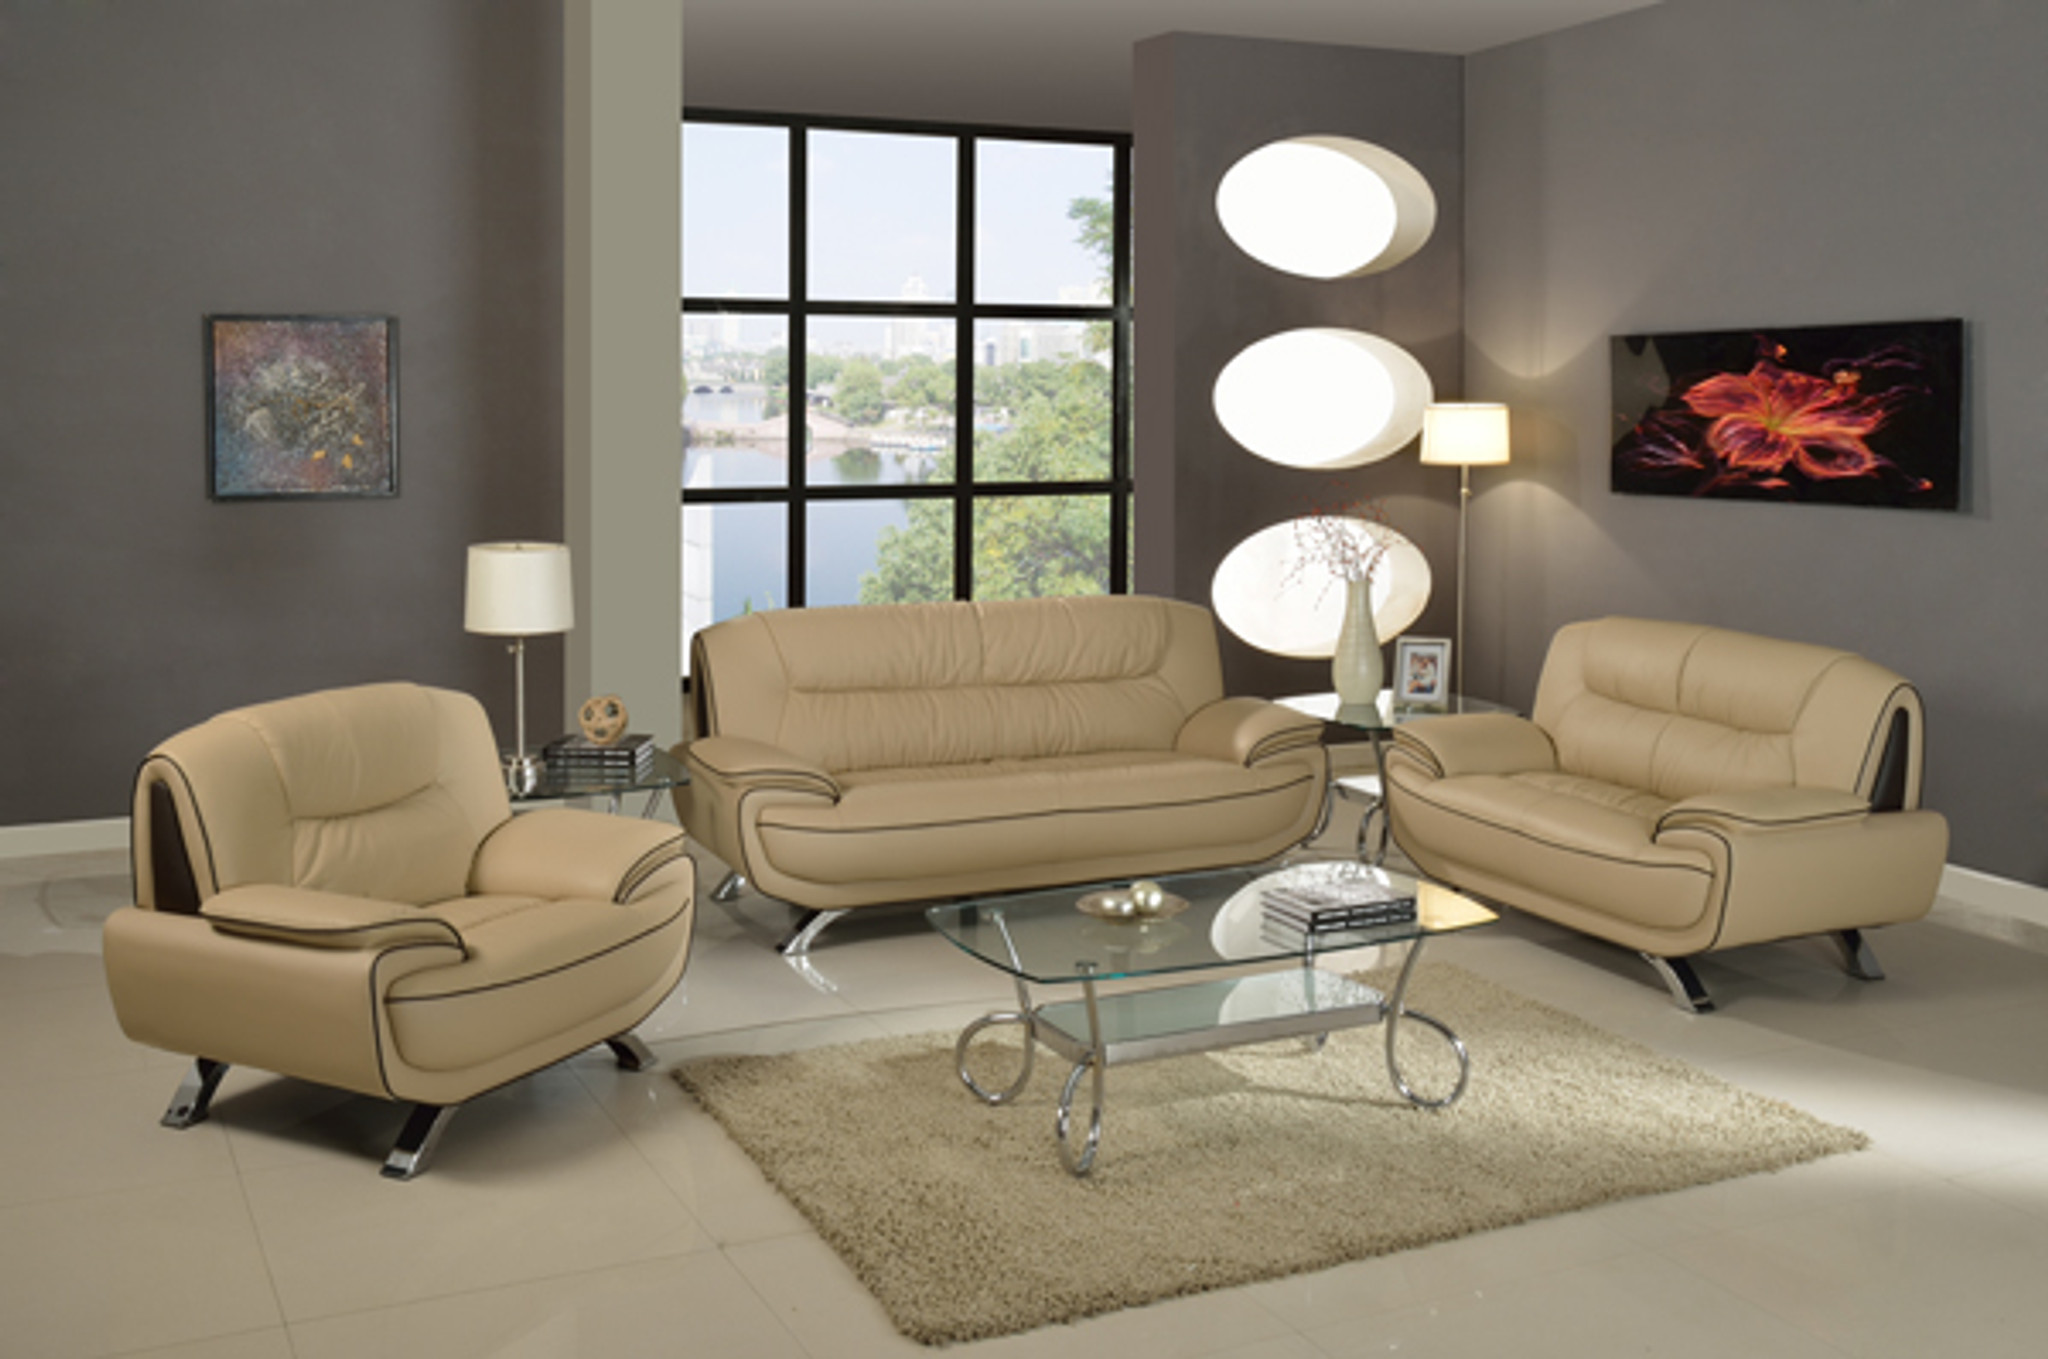 KASSA MALL HOME FURNITURE - U405 CAP/BROWN - CONTEMPORARY SOFA LOVESEAT SET UPHOLSTERED IN CUPPUCINO BROWN LEATHER